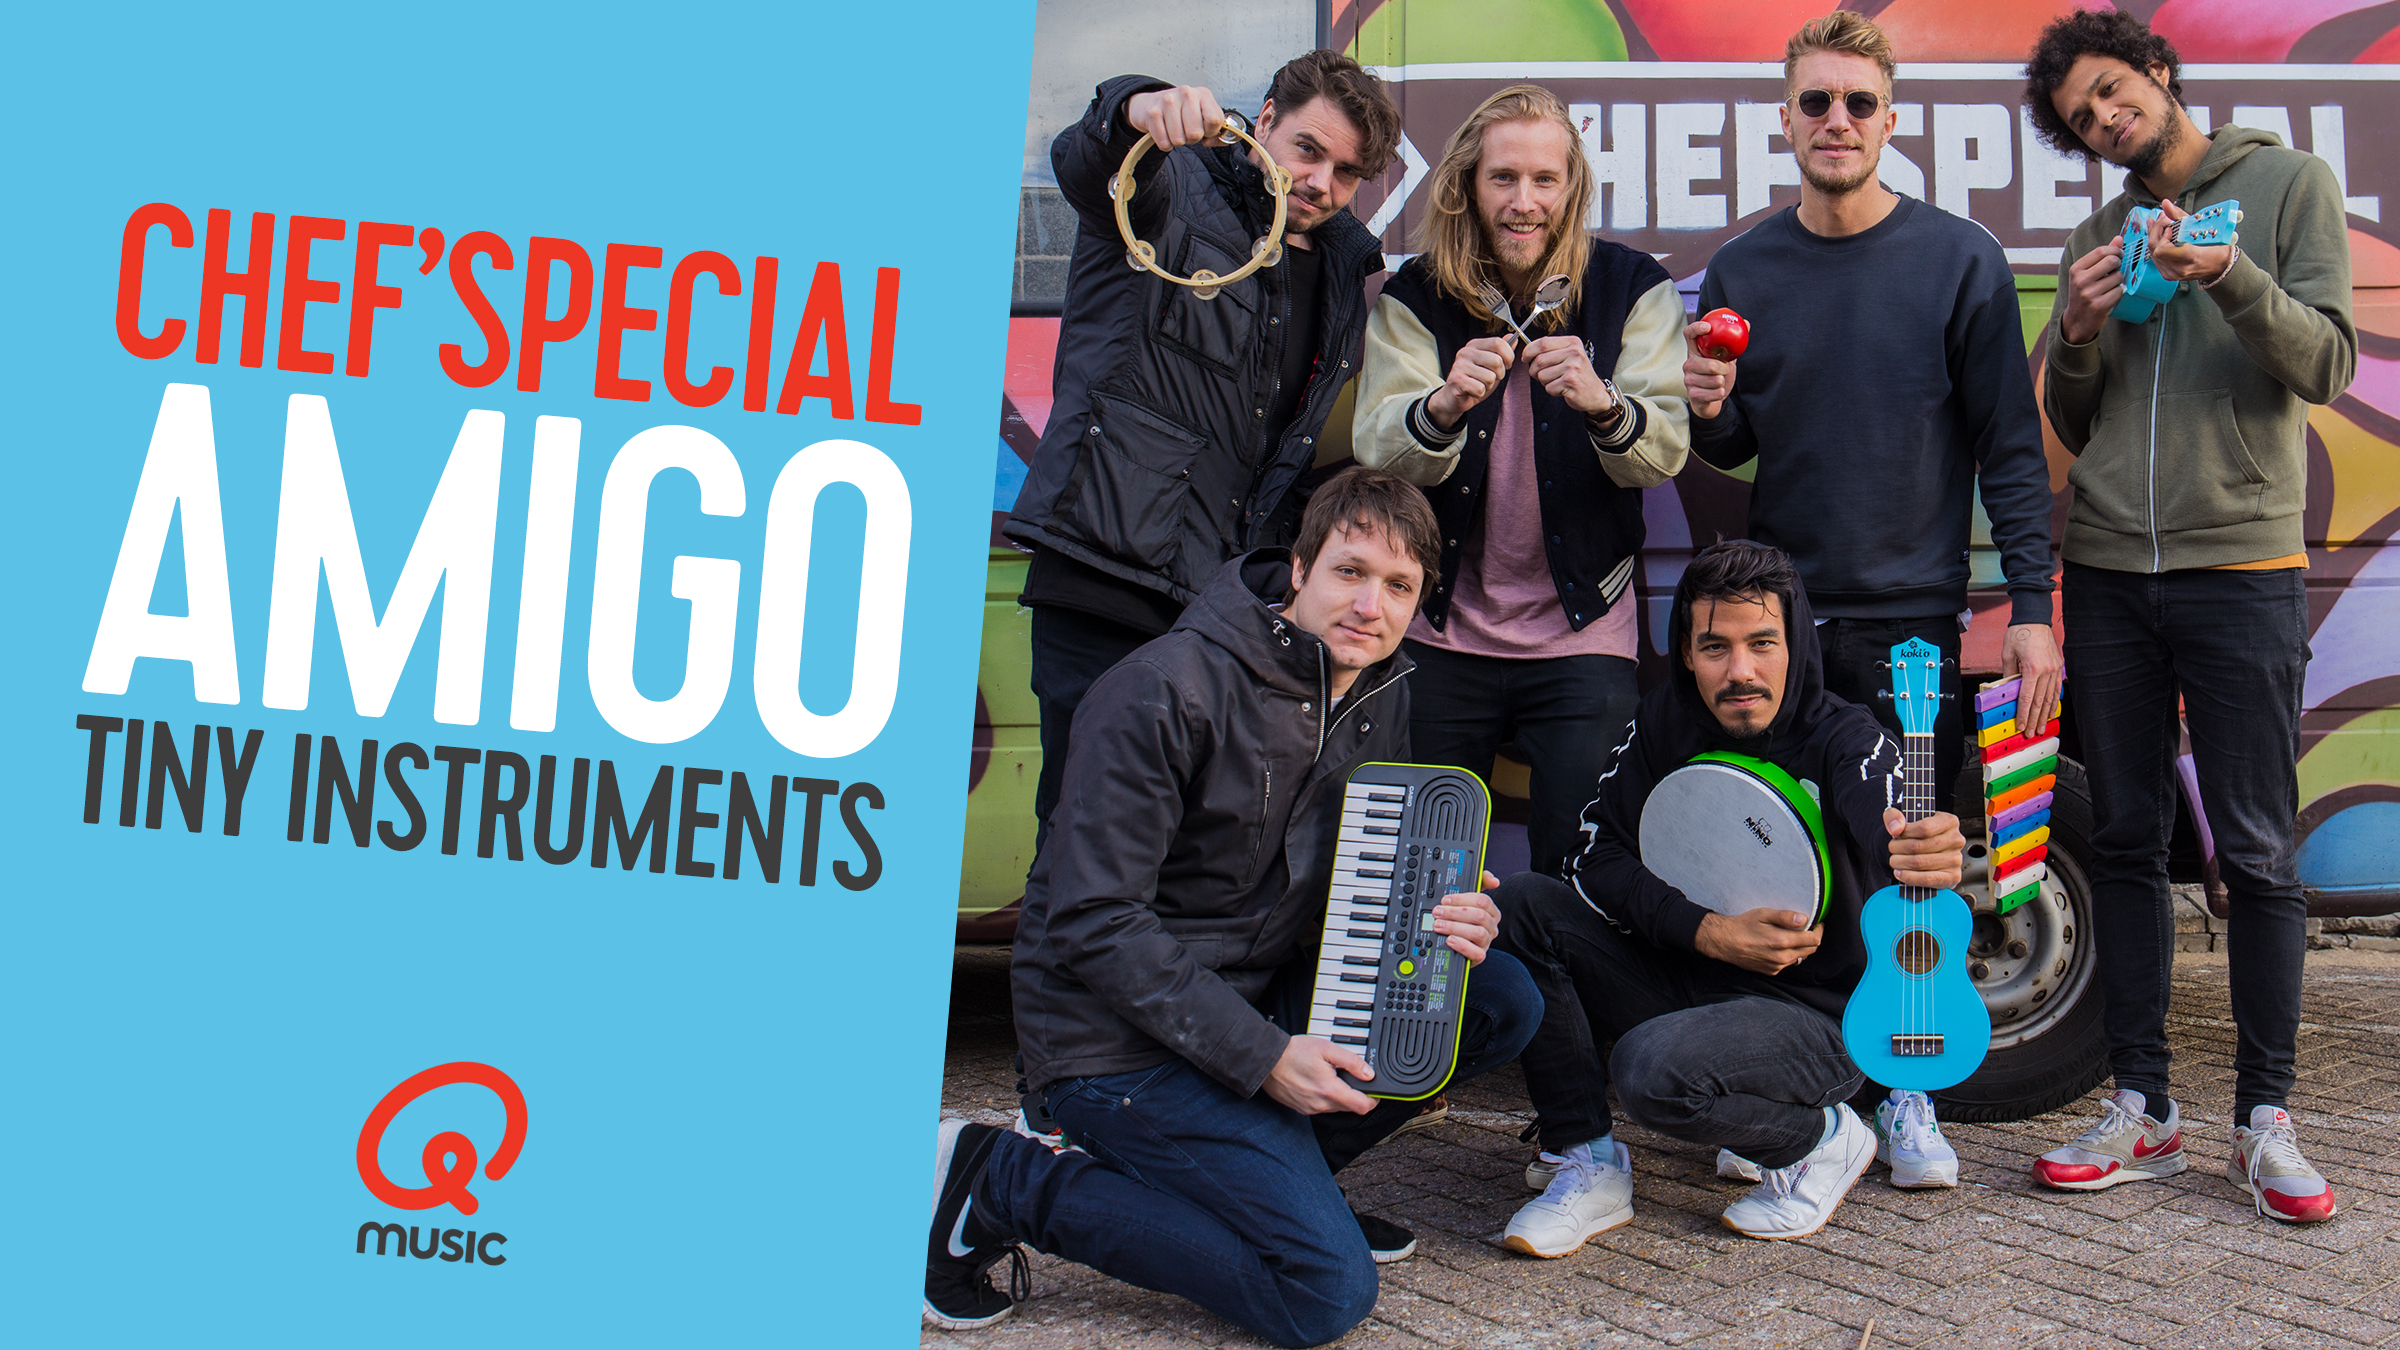 Amigo tiny instruments   thumb